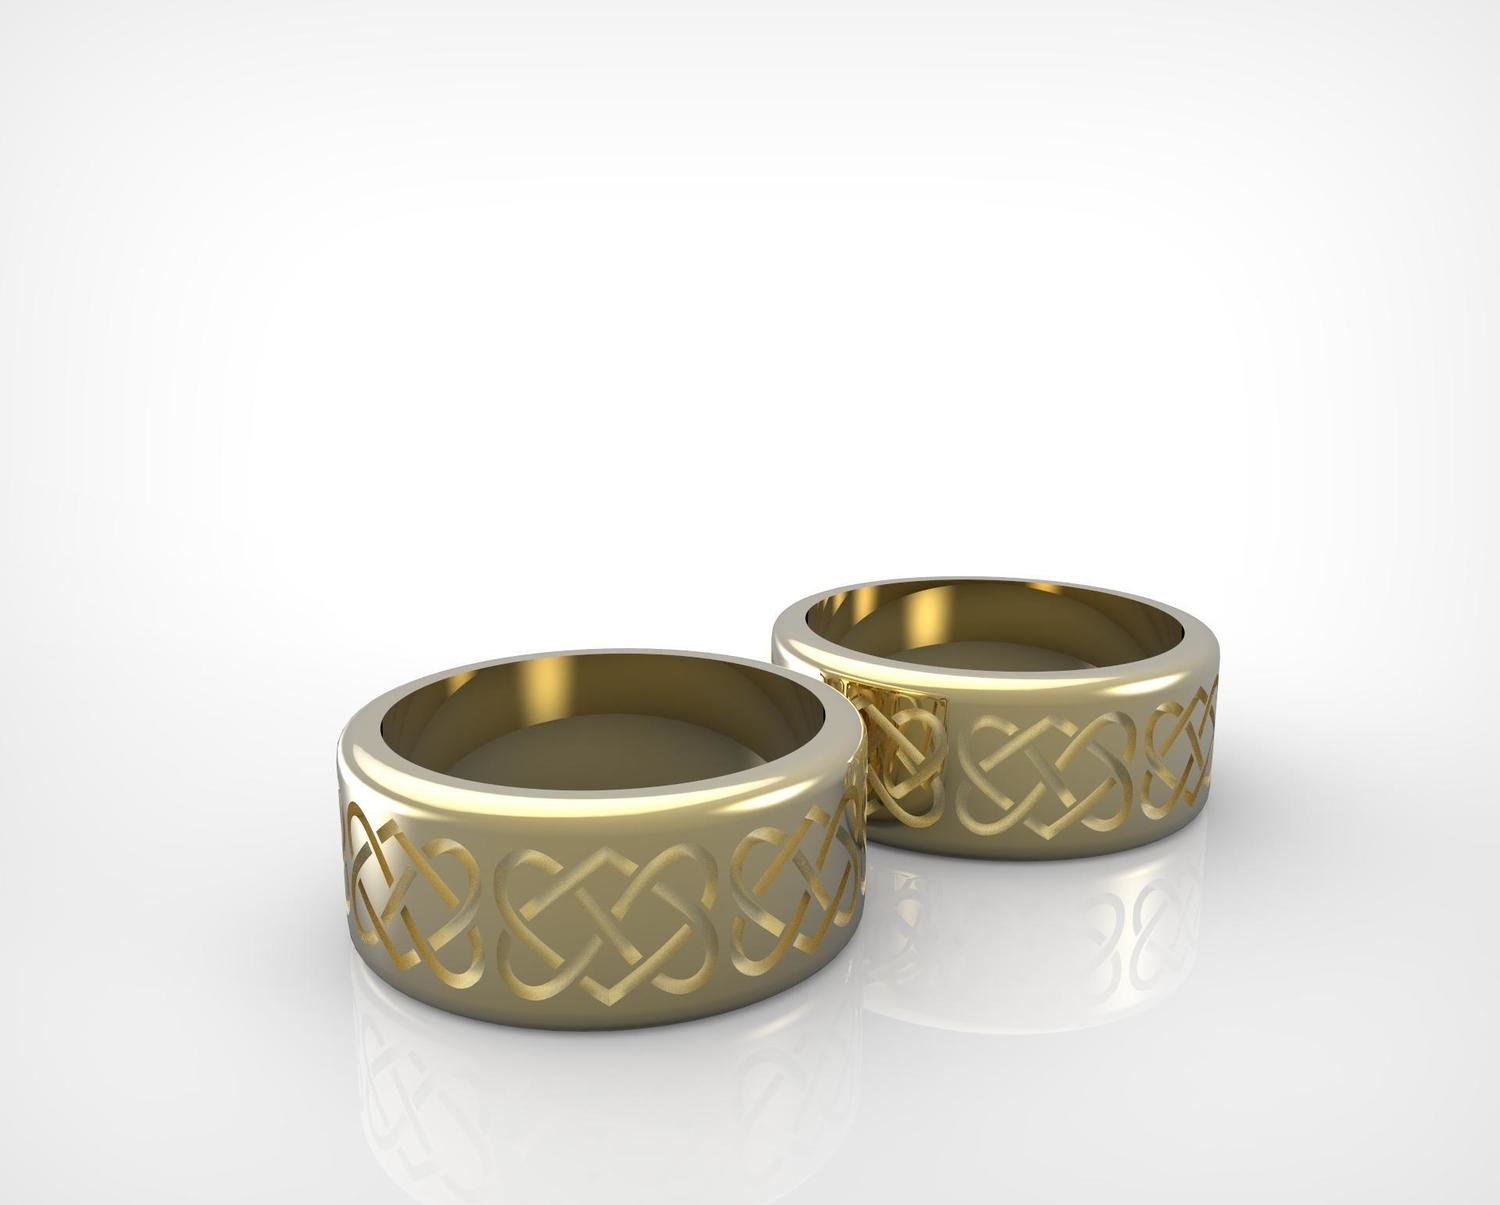 CAD Model of Custom Wedding Ring